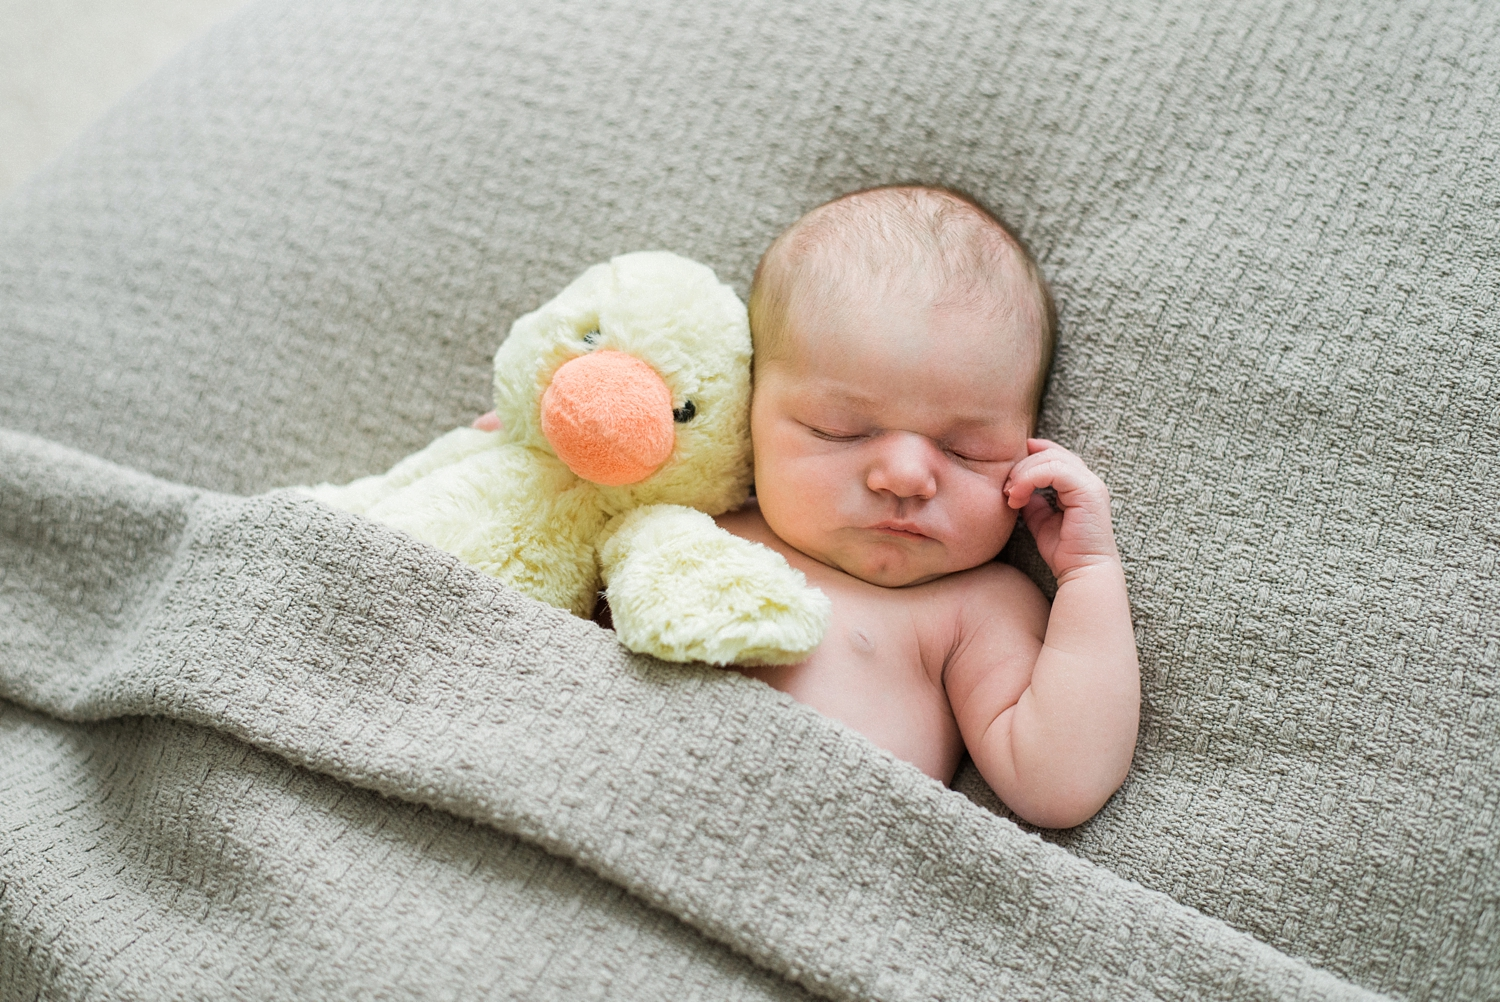 portland-newborn-photographer-baby-girl-with-duck-stuffed-animal-black-and-white-03